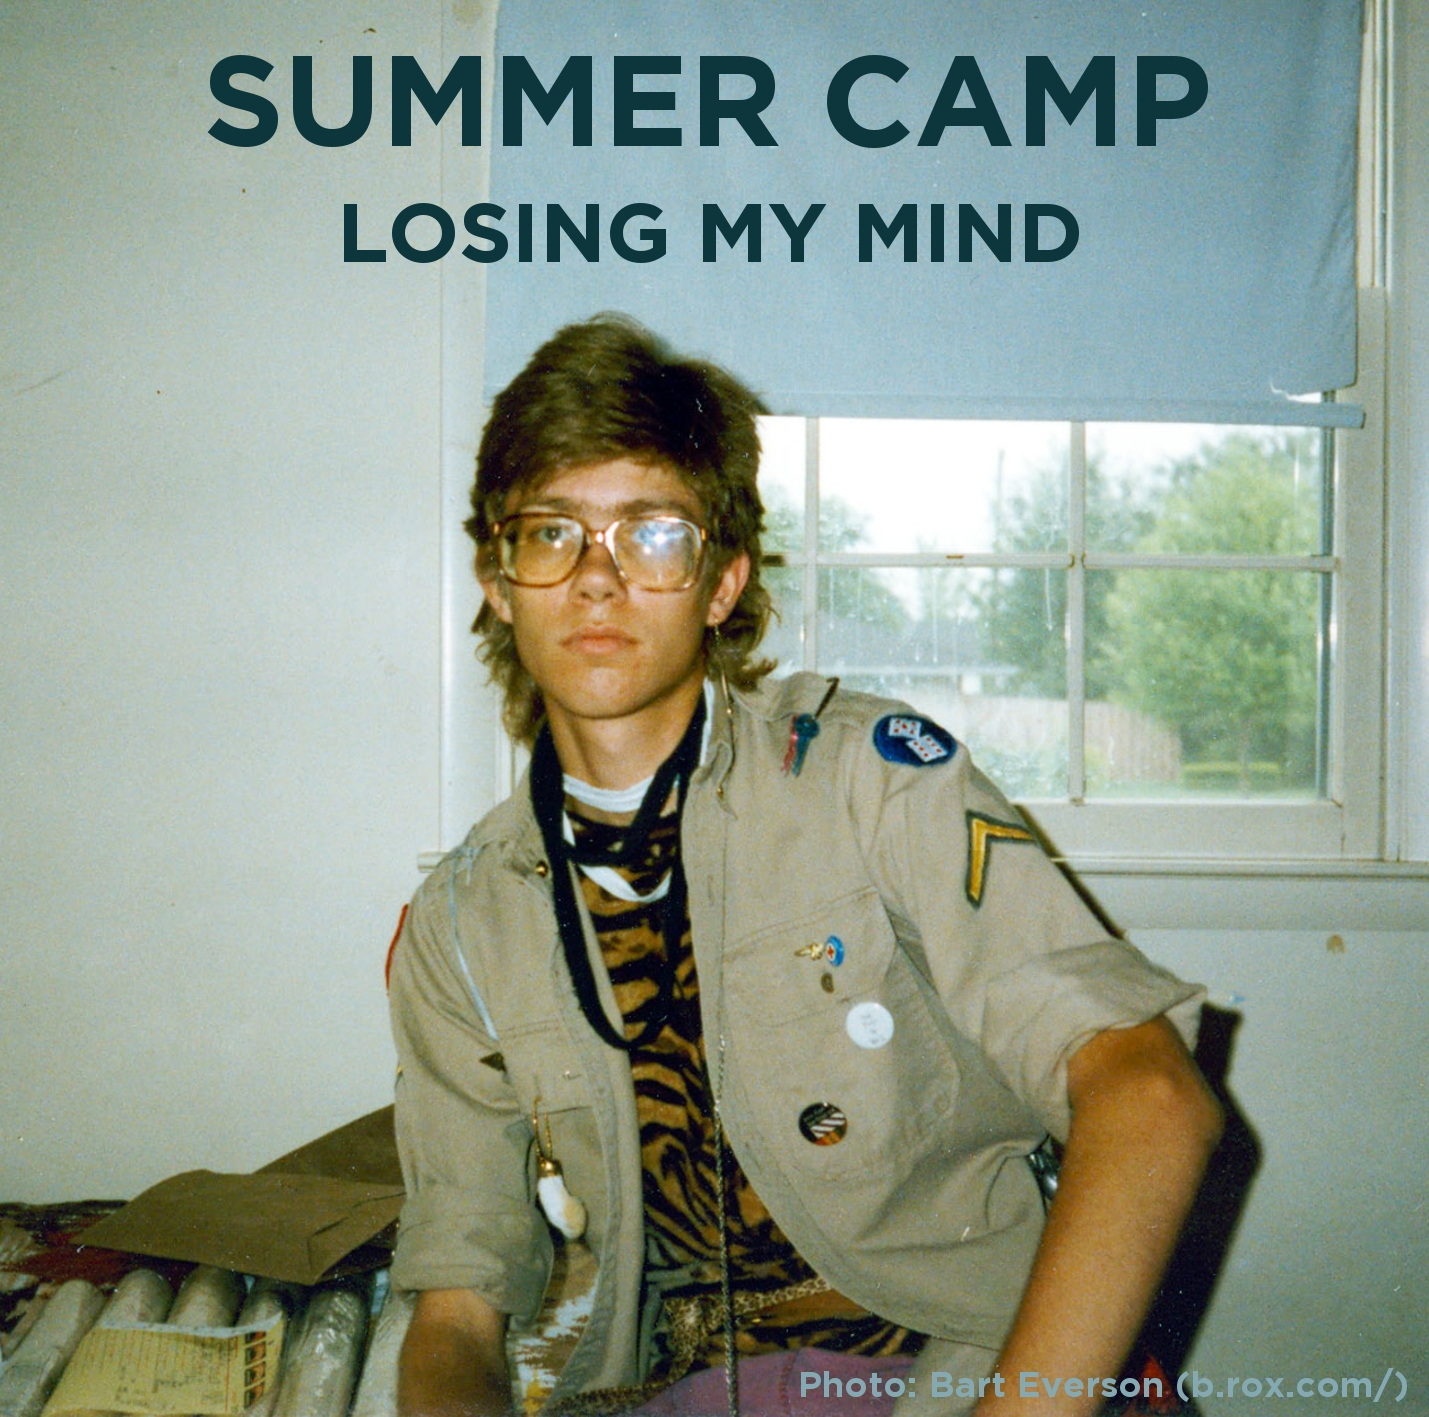 SummerCamp Losing My Mind_St. Etienne Remix EP artwork cover